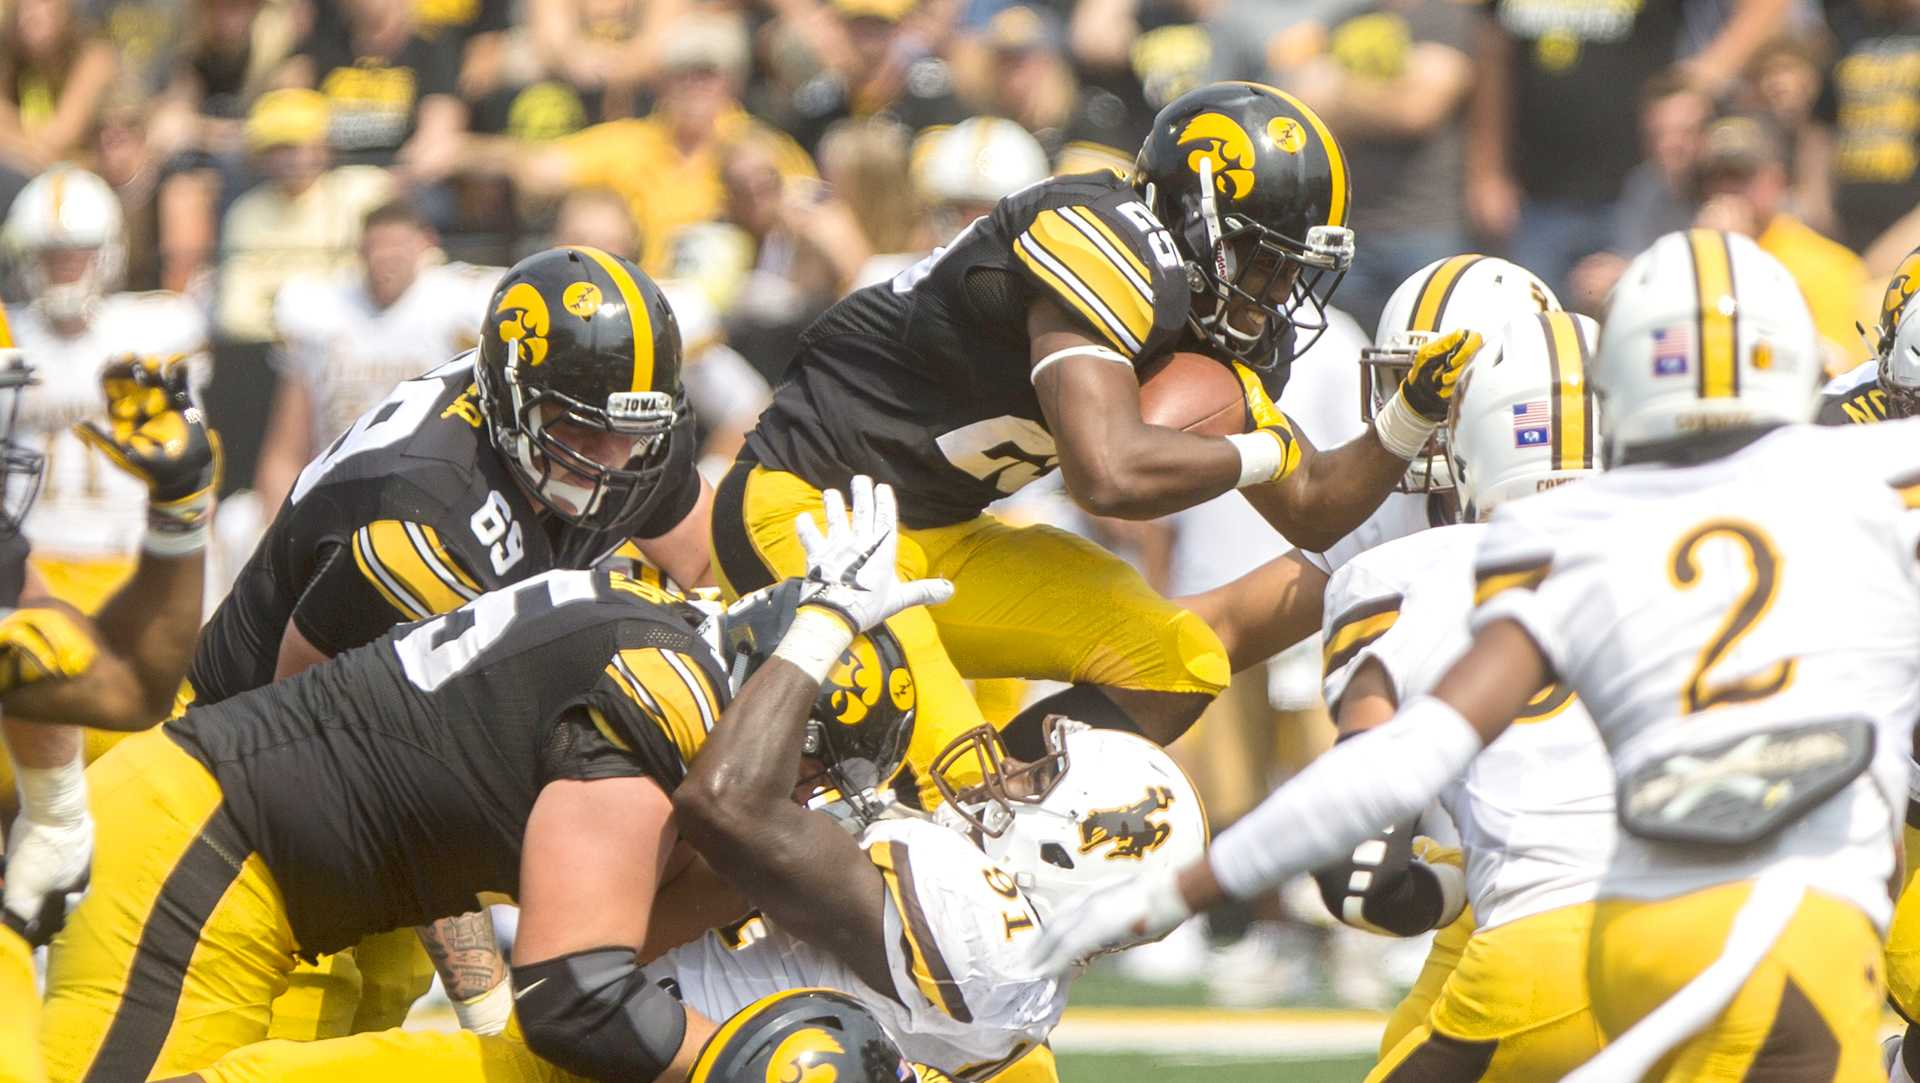 Iowa running back Akrum Wadley dives over the Wyoming defense during the season opener against Wyoming on Saturday, Sep. 2, 2017. The Hawkeyes went on to defeat the Cowboys, 24-3. (Ben Smith/The Daily Iowan)